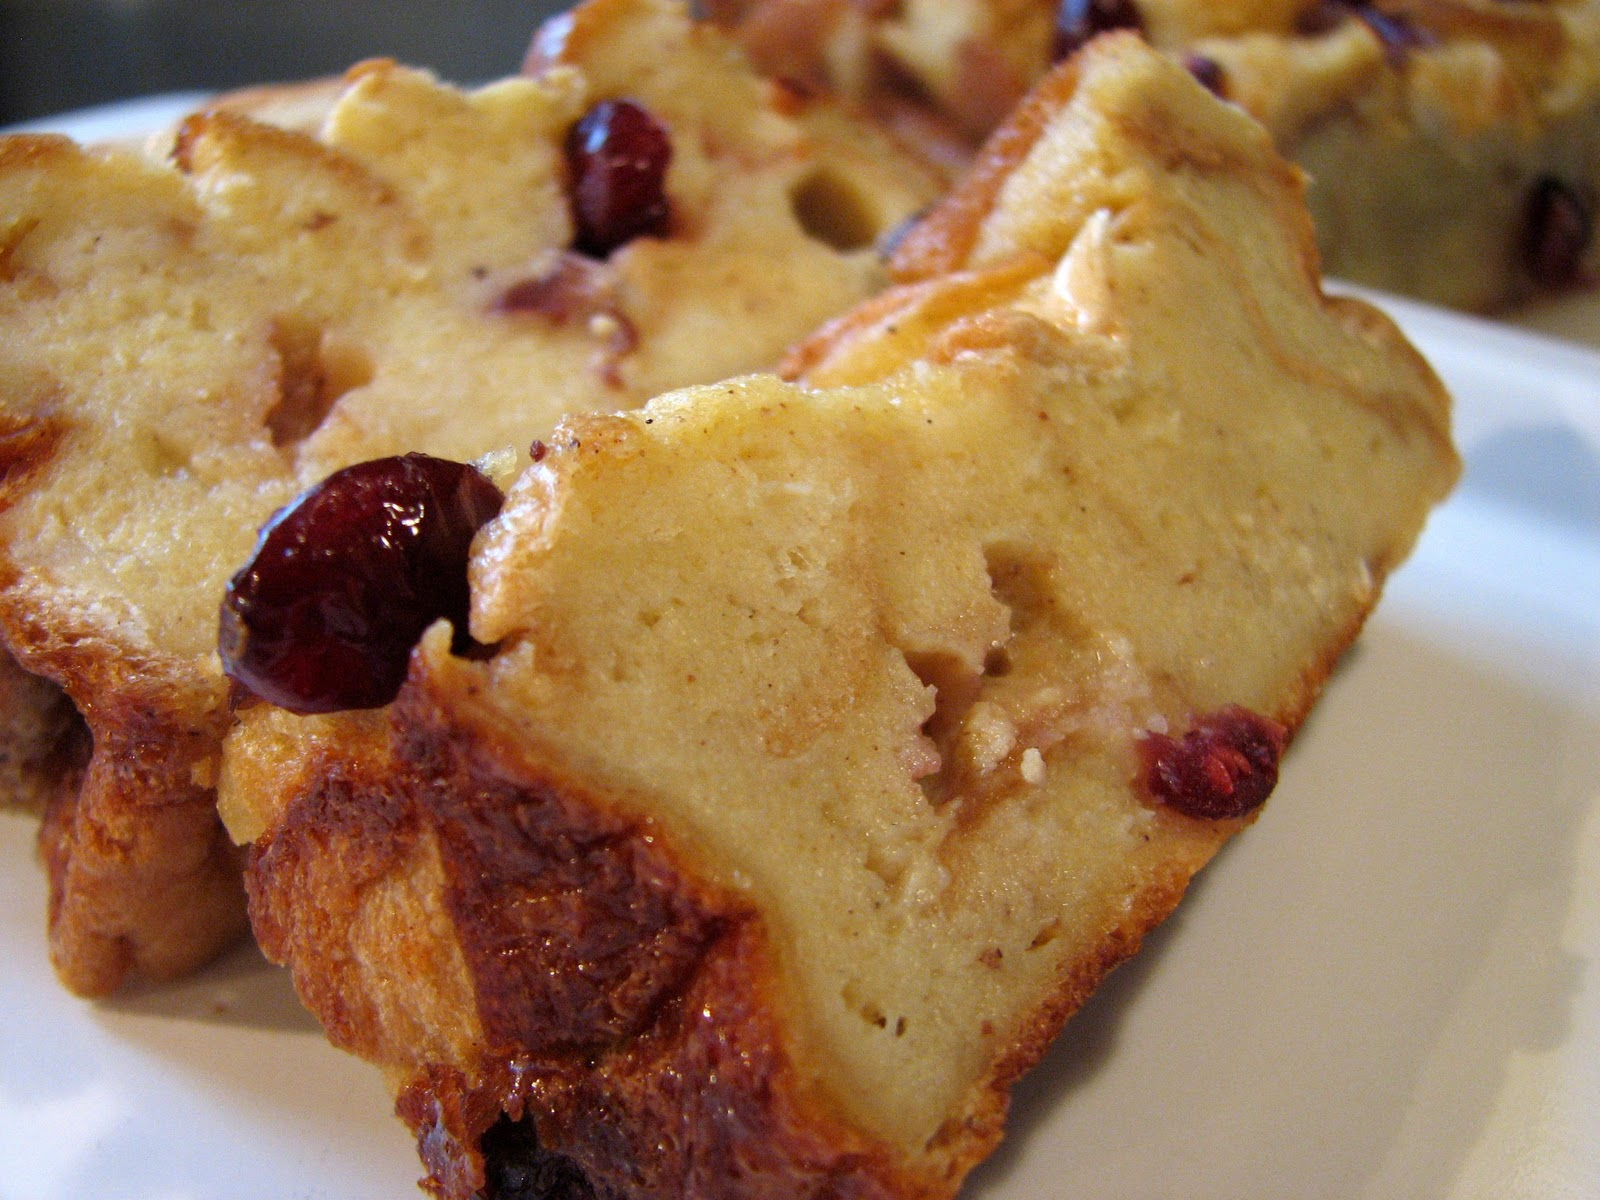 Ashleigh's Kitchen: Eggnog Bread Pudding with Craisins